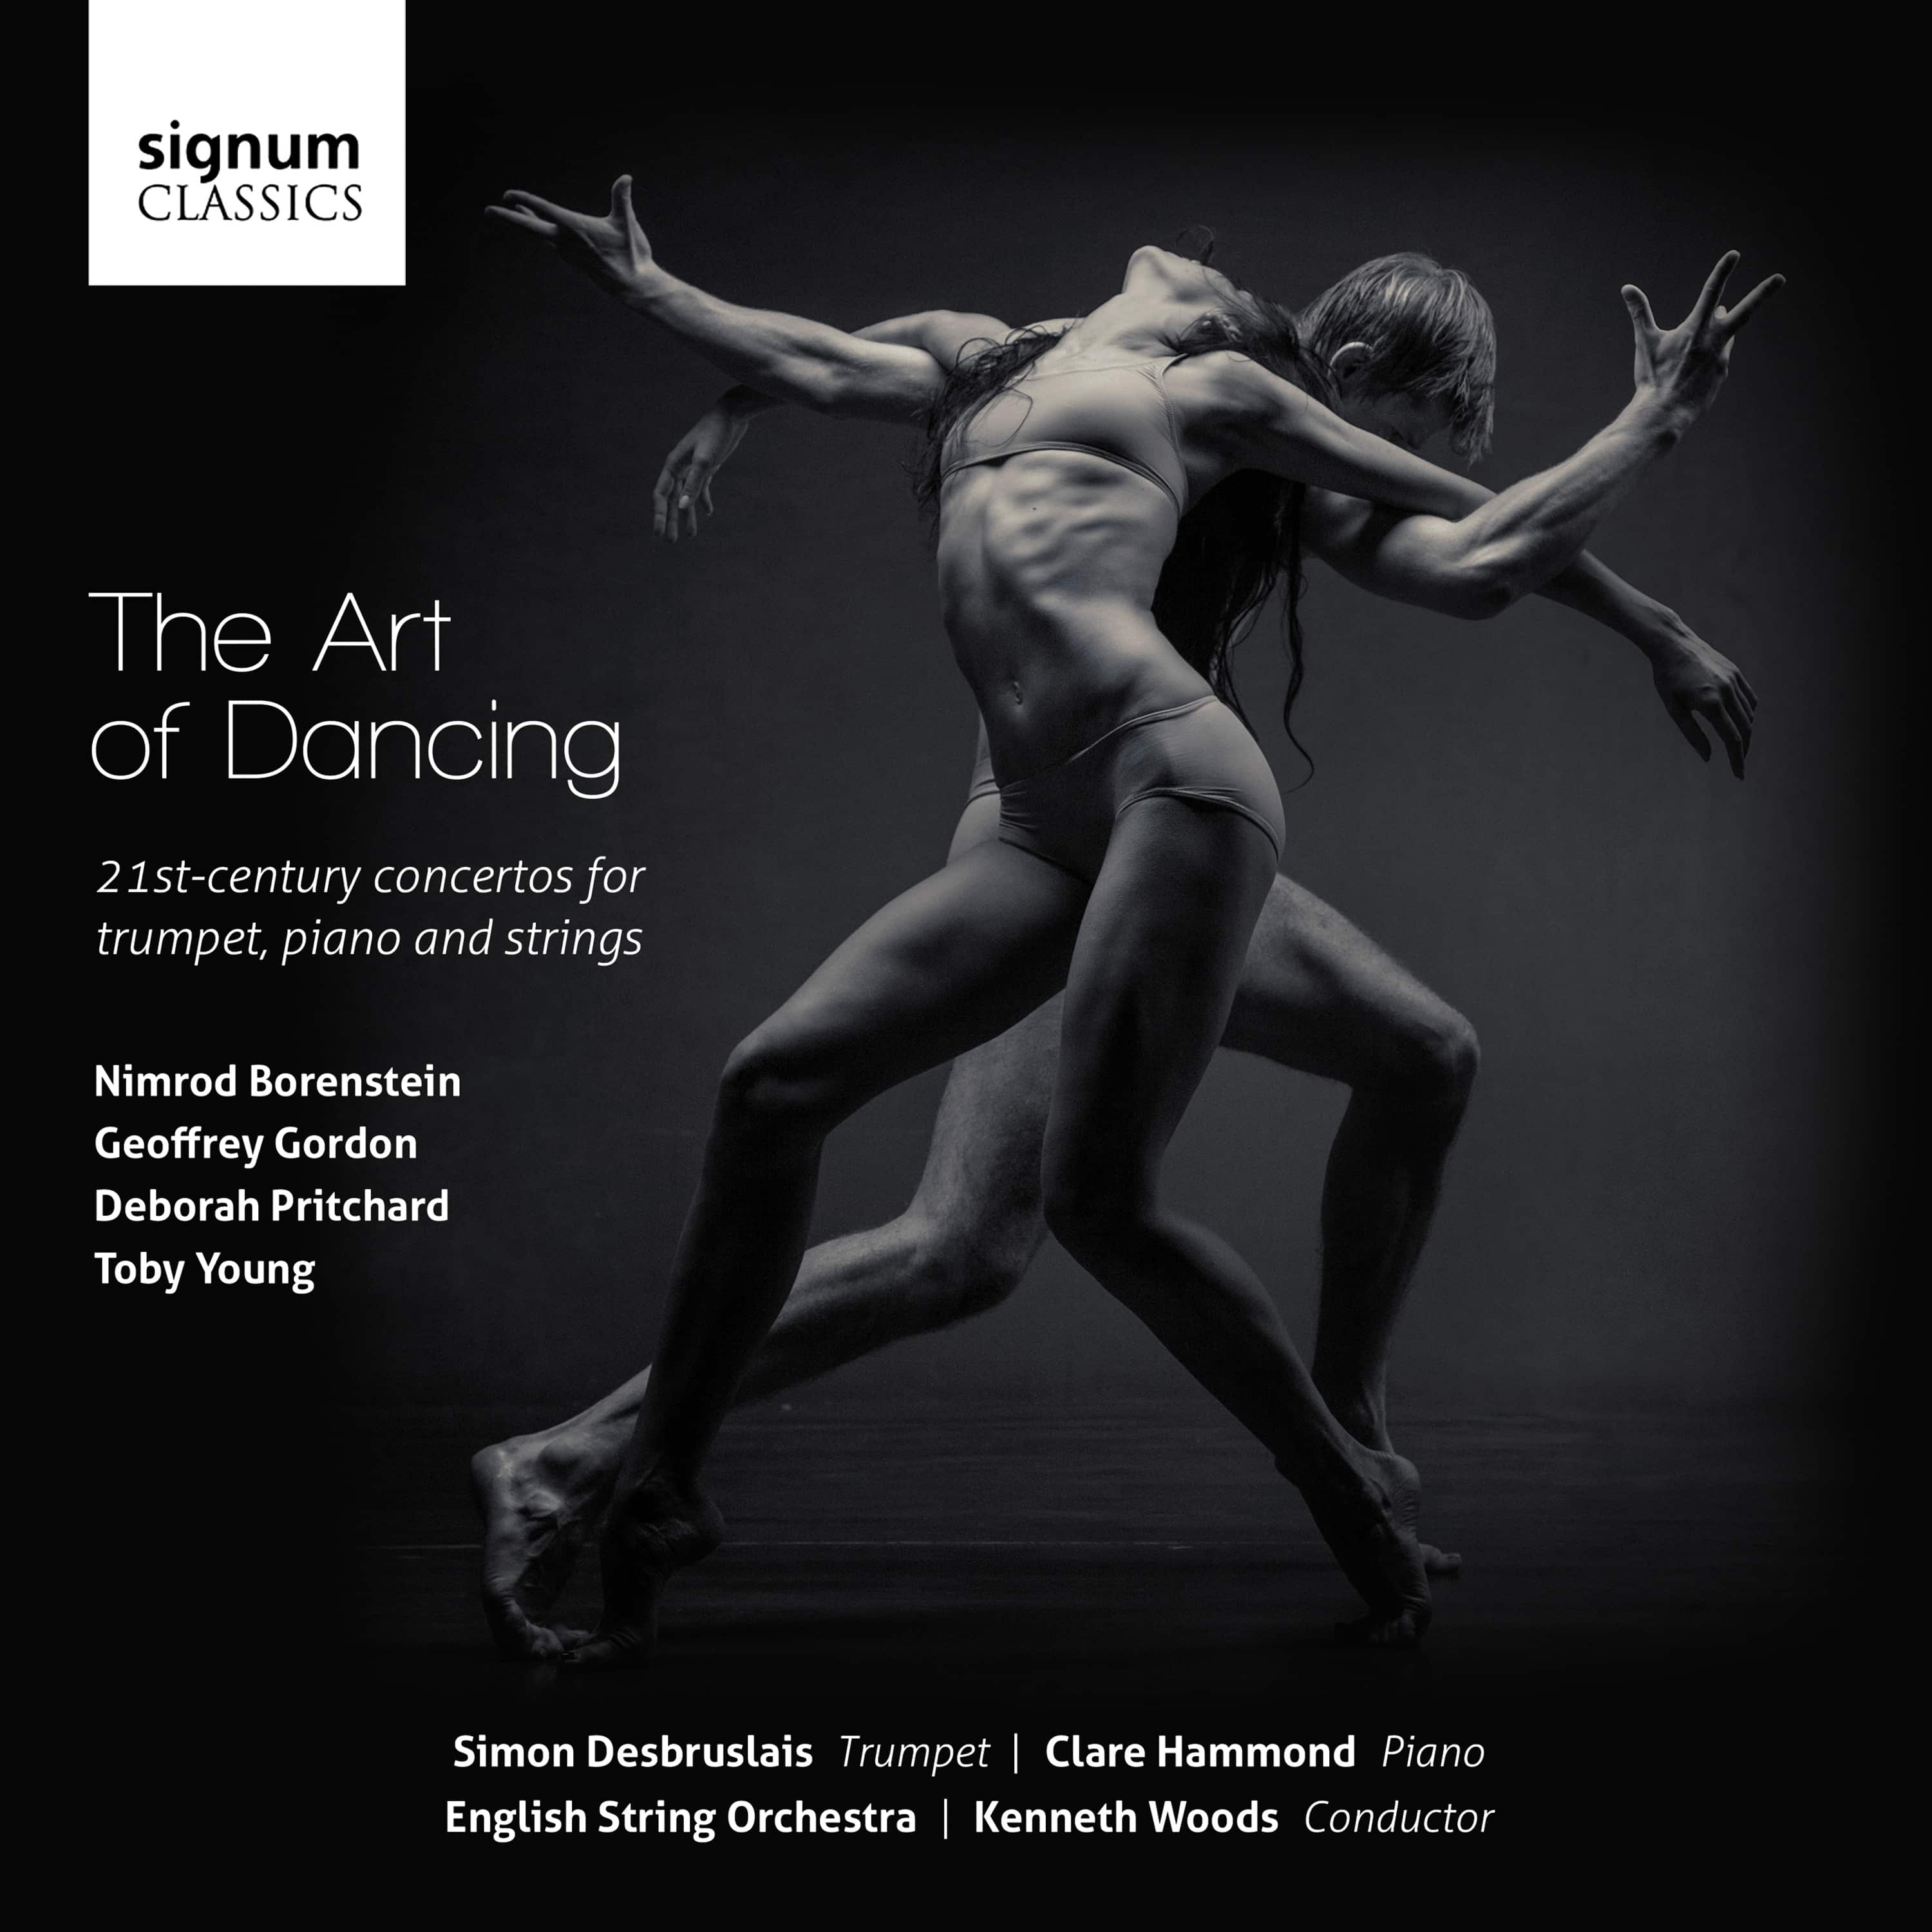 CD Review- Fanfare Magazine on The Art of Dancing